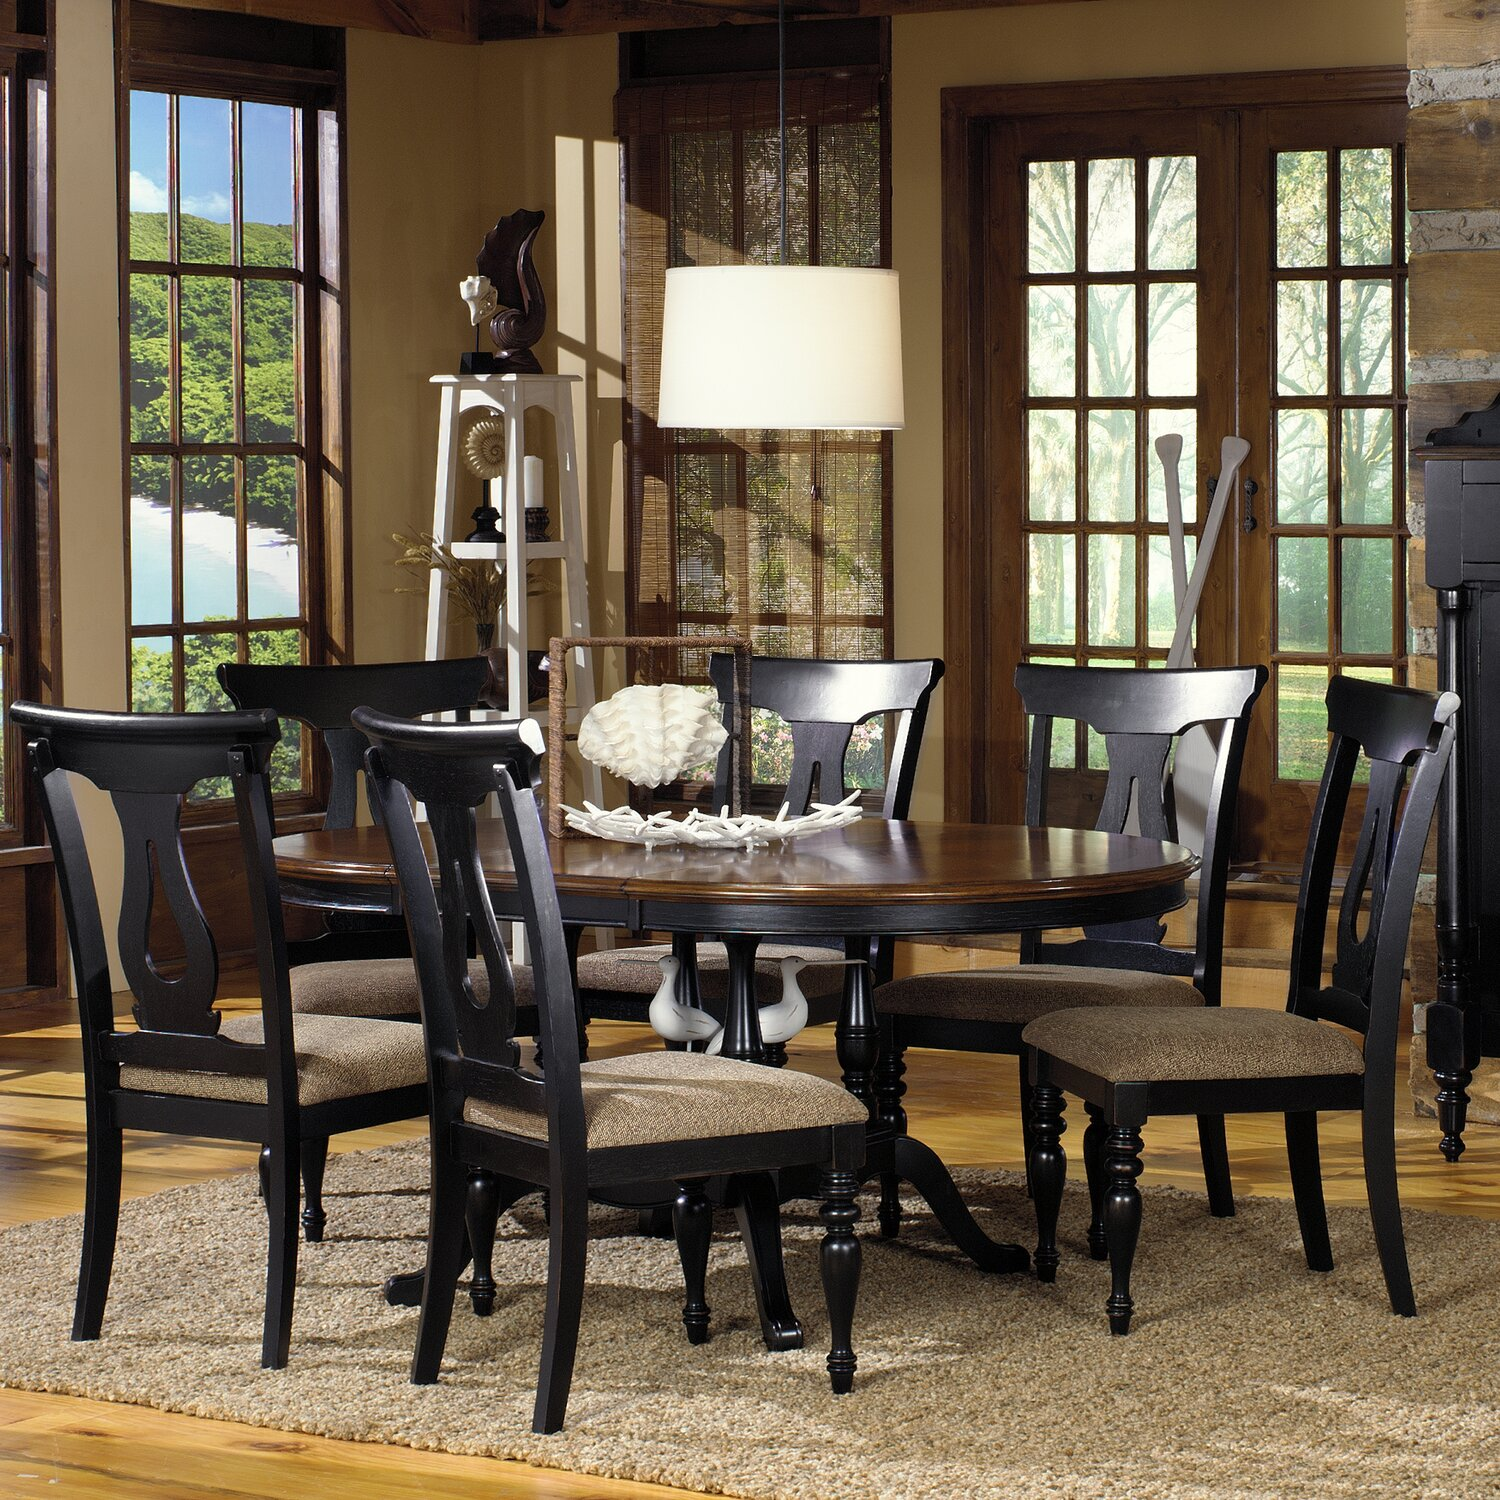 Dining Table With 8 Fabric Chairs 9Pcset Bellagio Collection Best Size Of Dining Room Table For 10 Design Inspiration